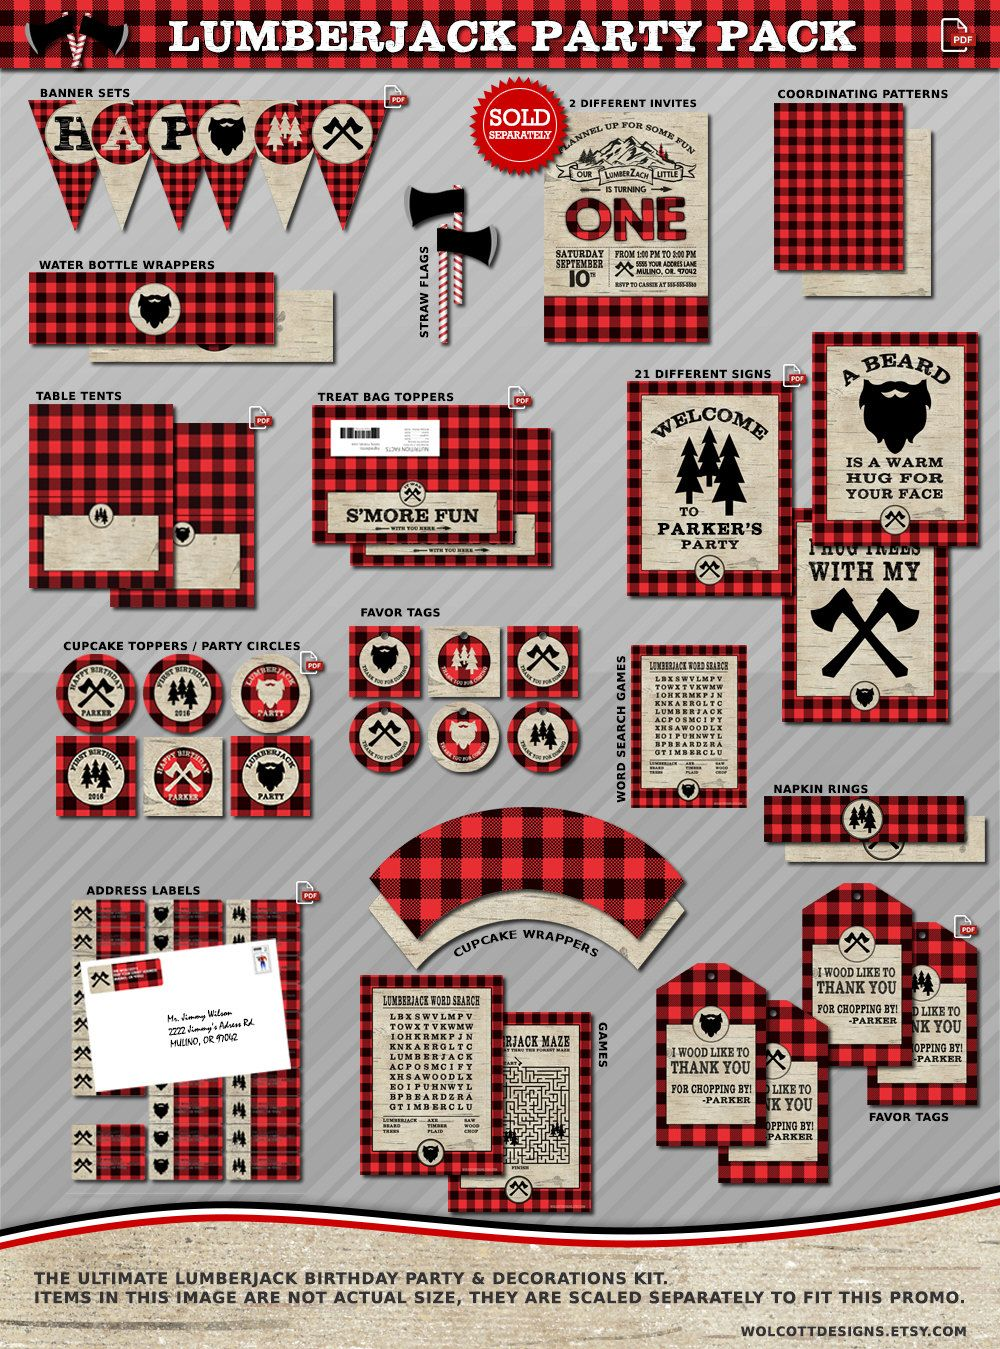 e182c36f61 DIY Lumberjack Party Decorations, Favors and more - Everything you need to  decorate for your lumberjack party. by #wolcottdesigns on Etsy